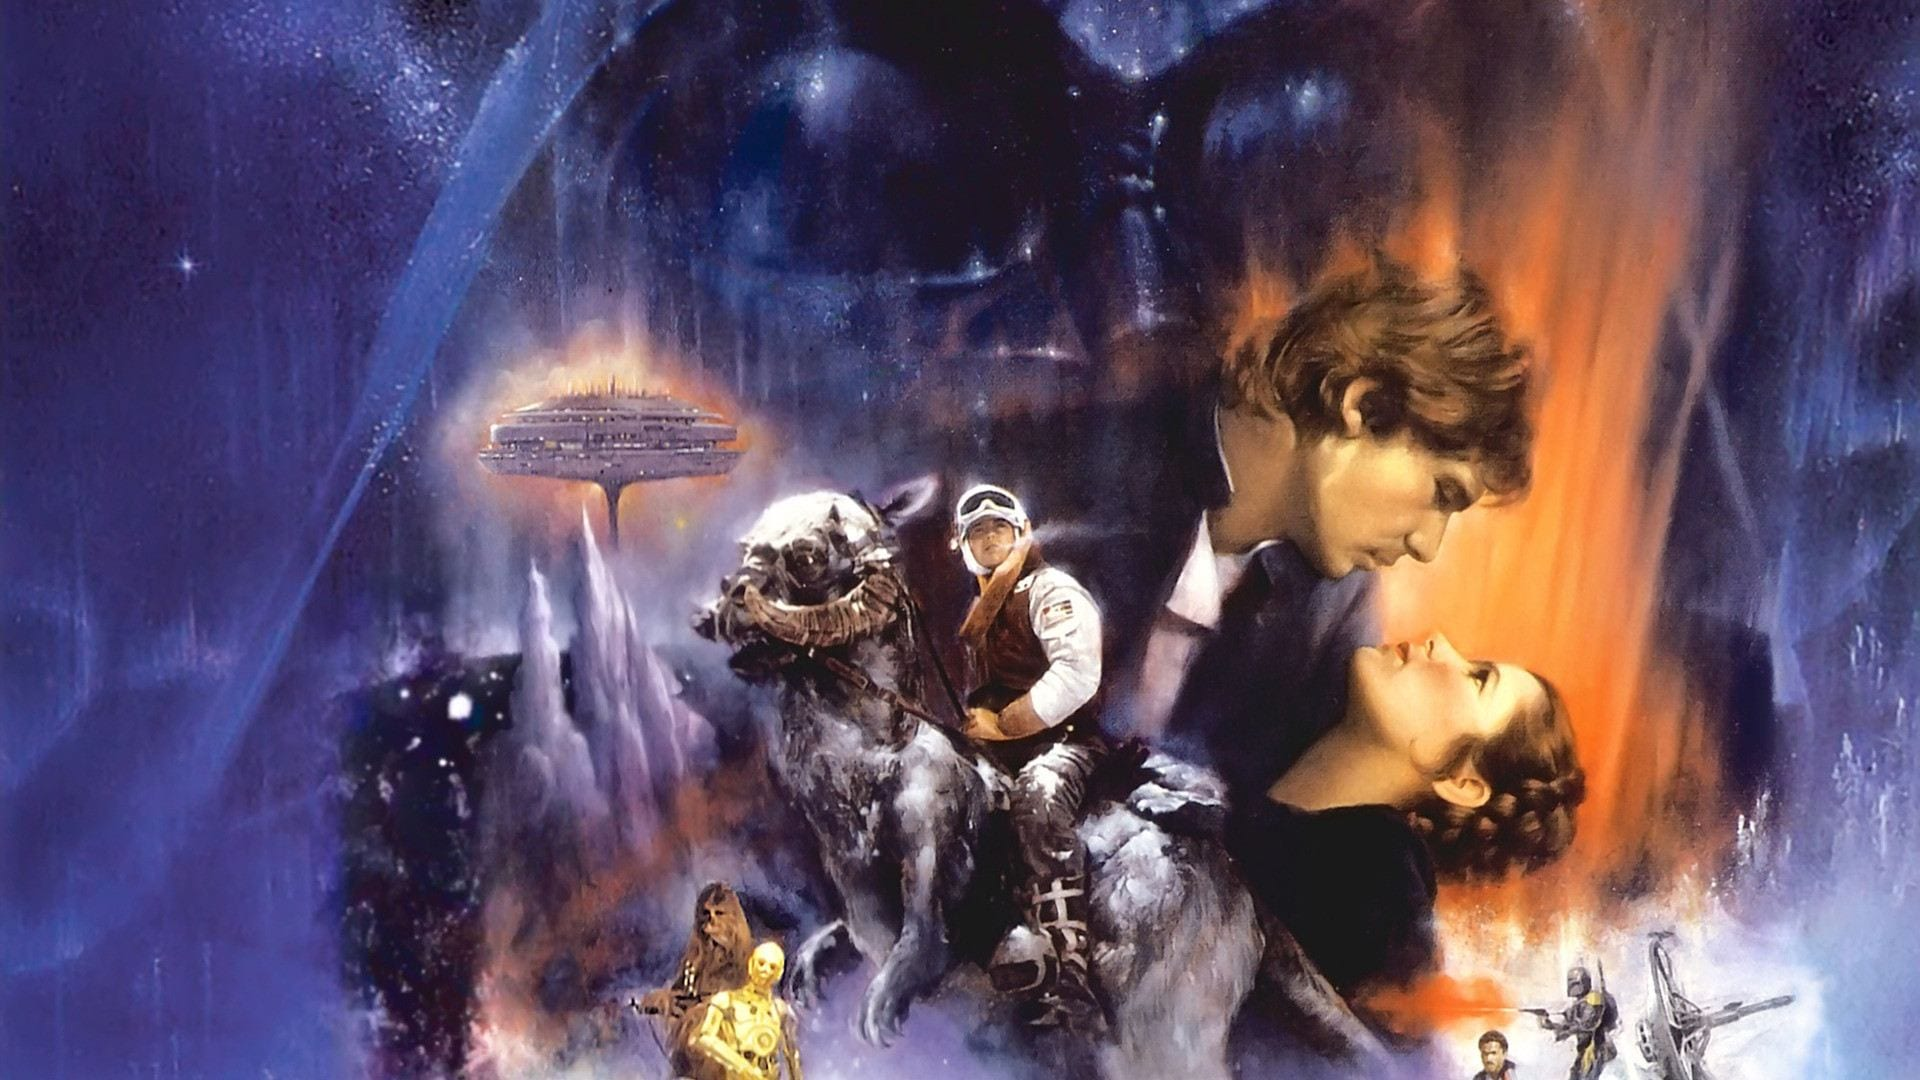 1 Star Wars Episode V The Empire Strikes Back 1980 Connor Griffin Passion Blog